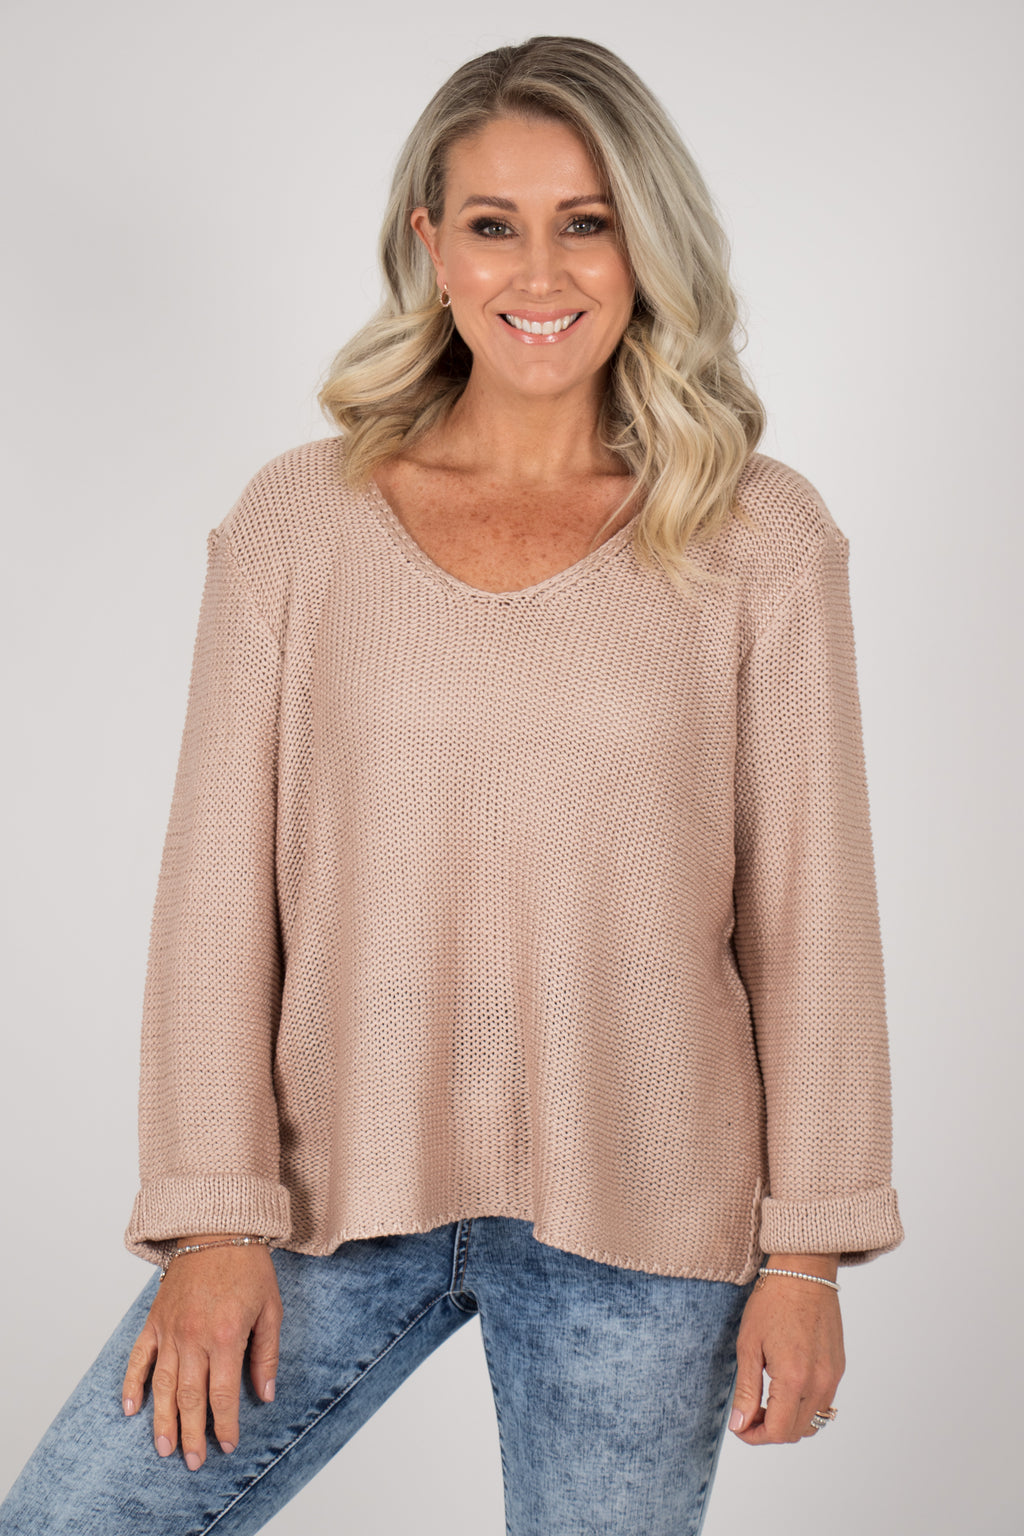 Elements Knit Jumper in Mocha